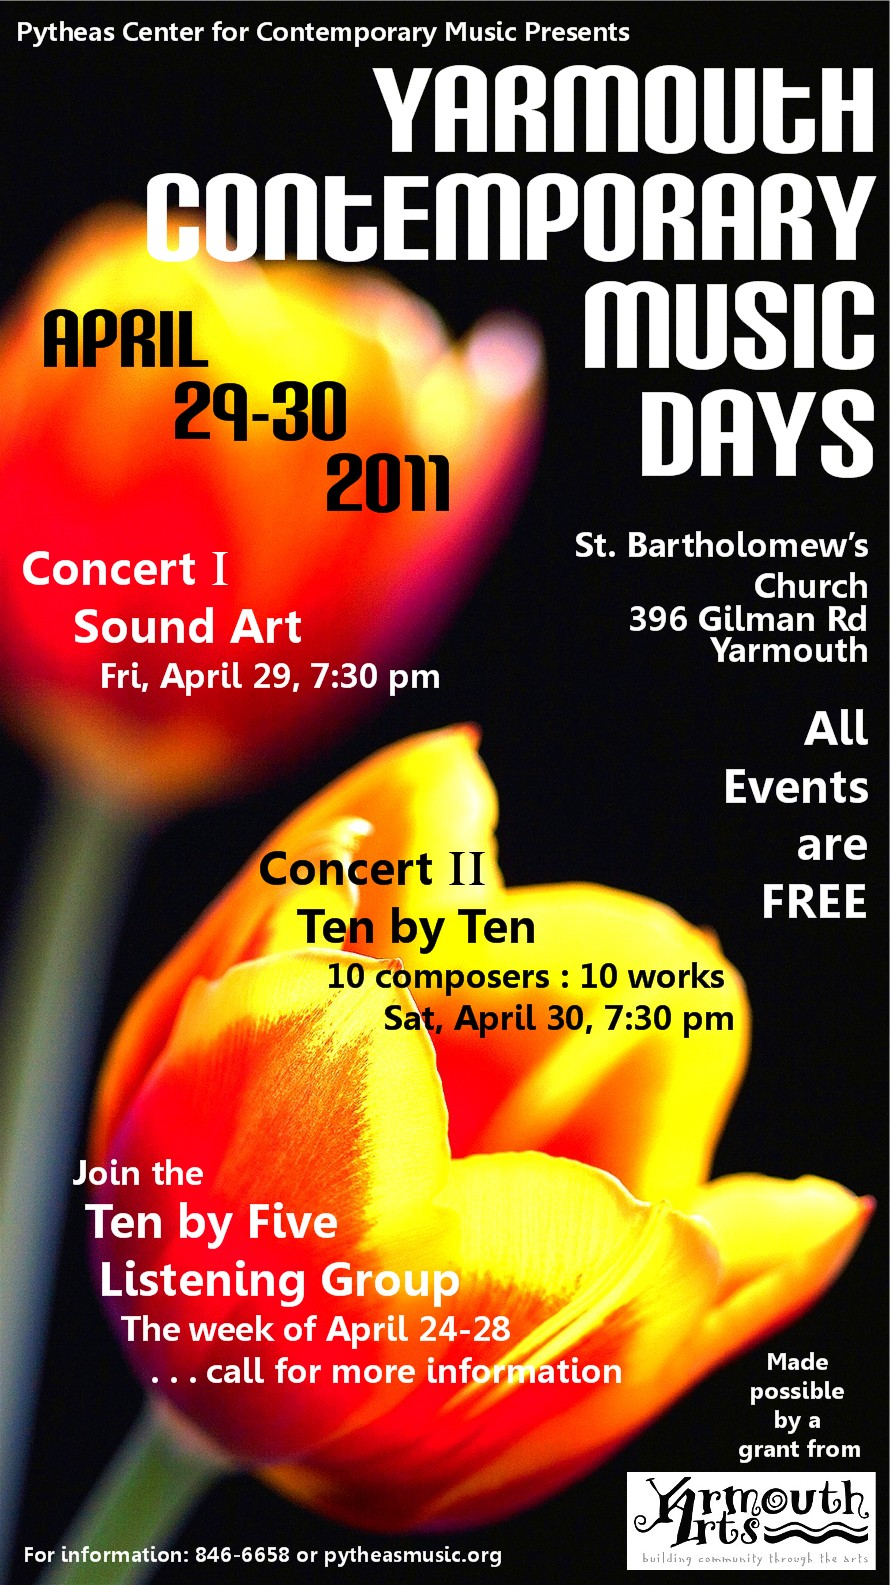 Yarmouth Contemporary Music Days 2011